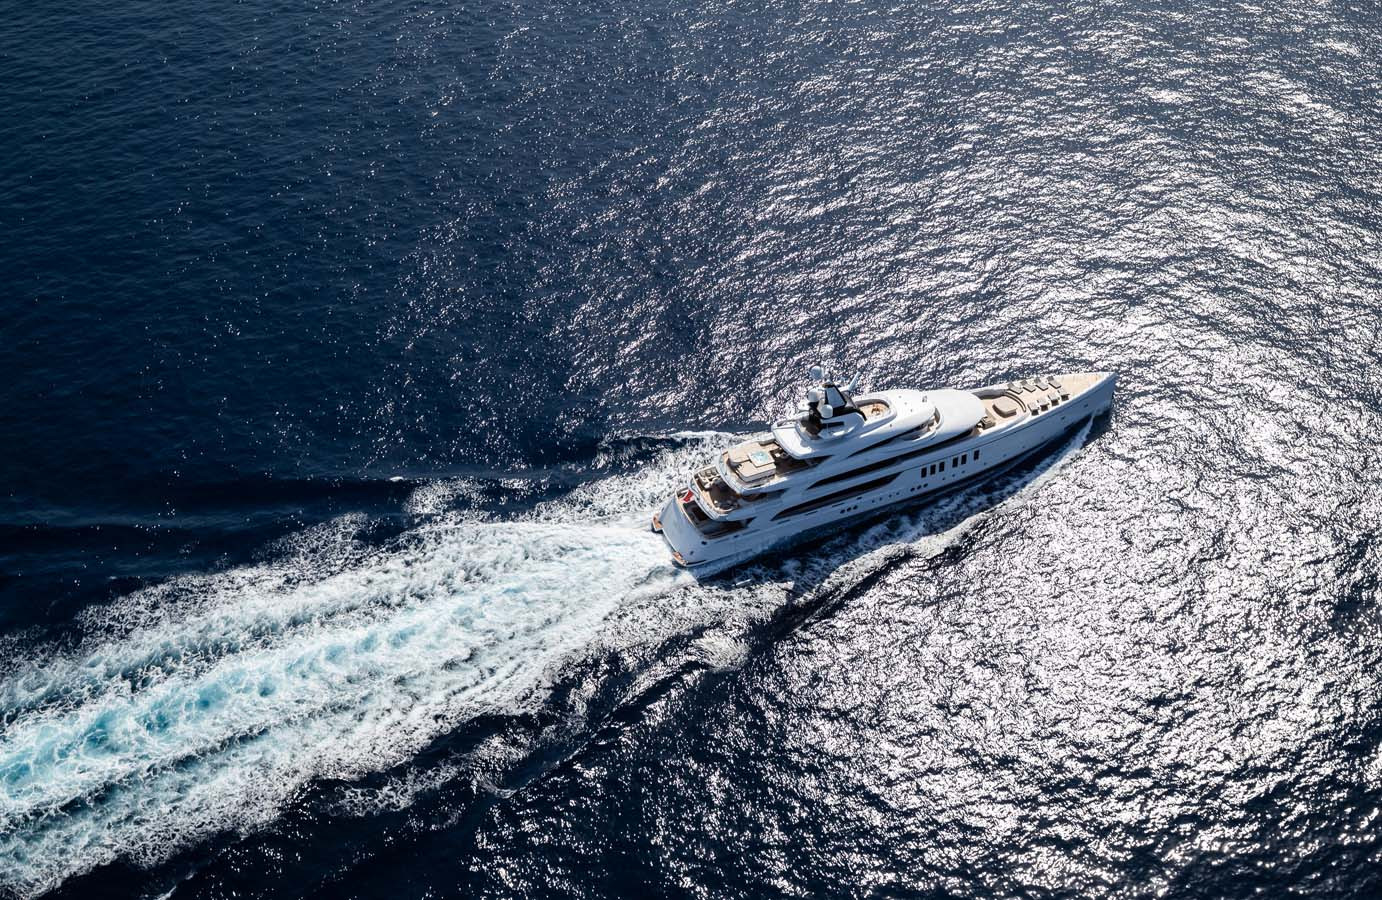 running_aerial_view_of_the_yacht_-__Phot